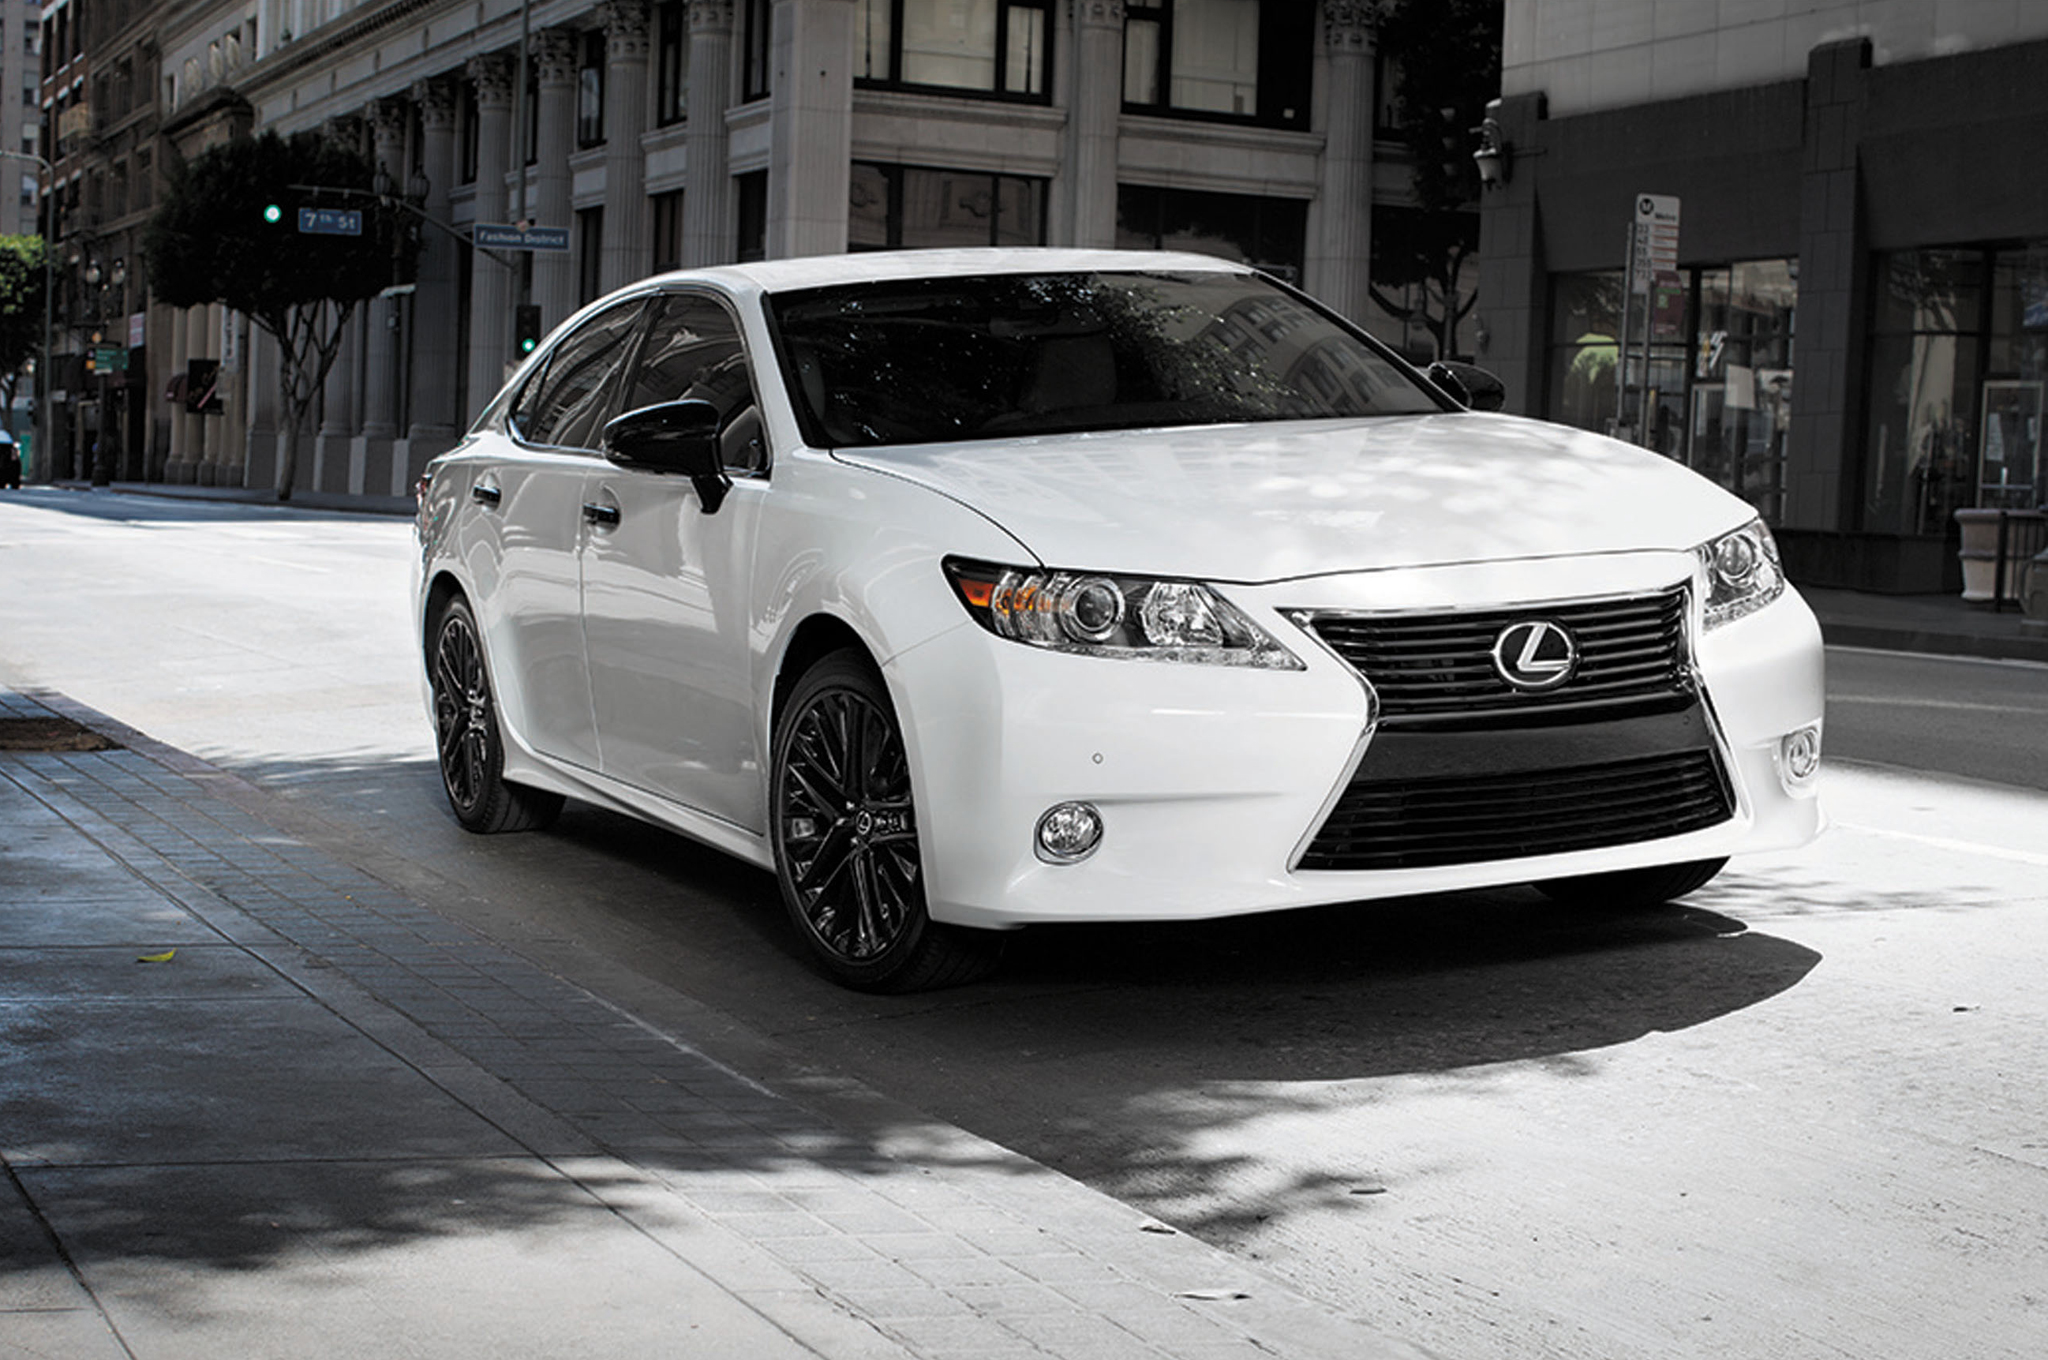 2015 Lexus ES 350 Information and photos ZombieDrive